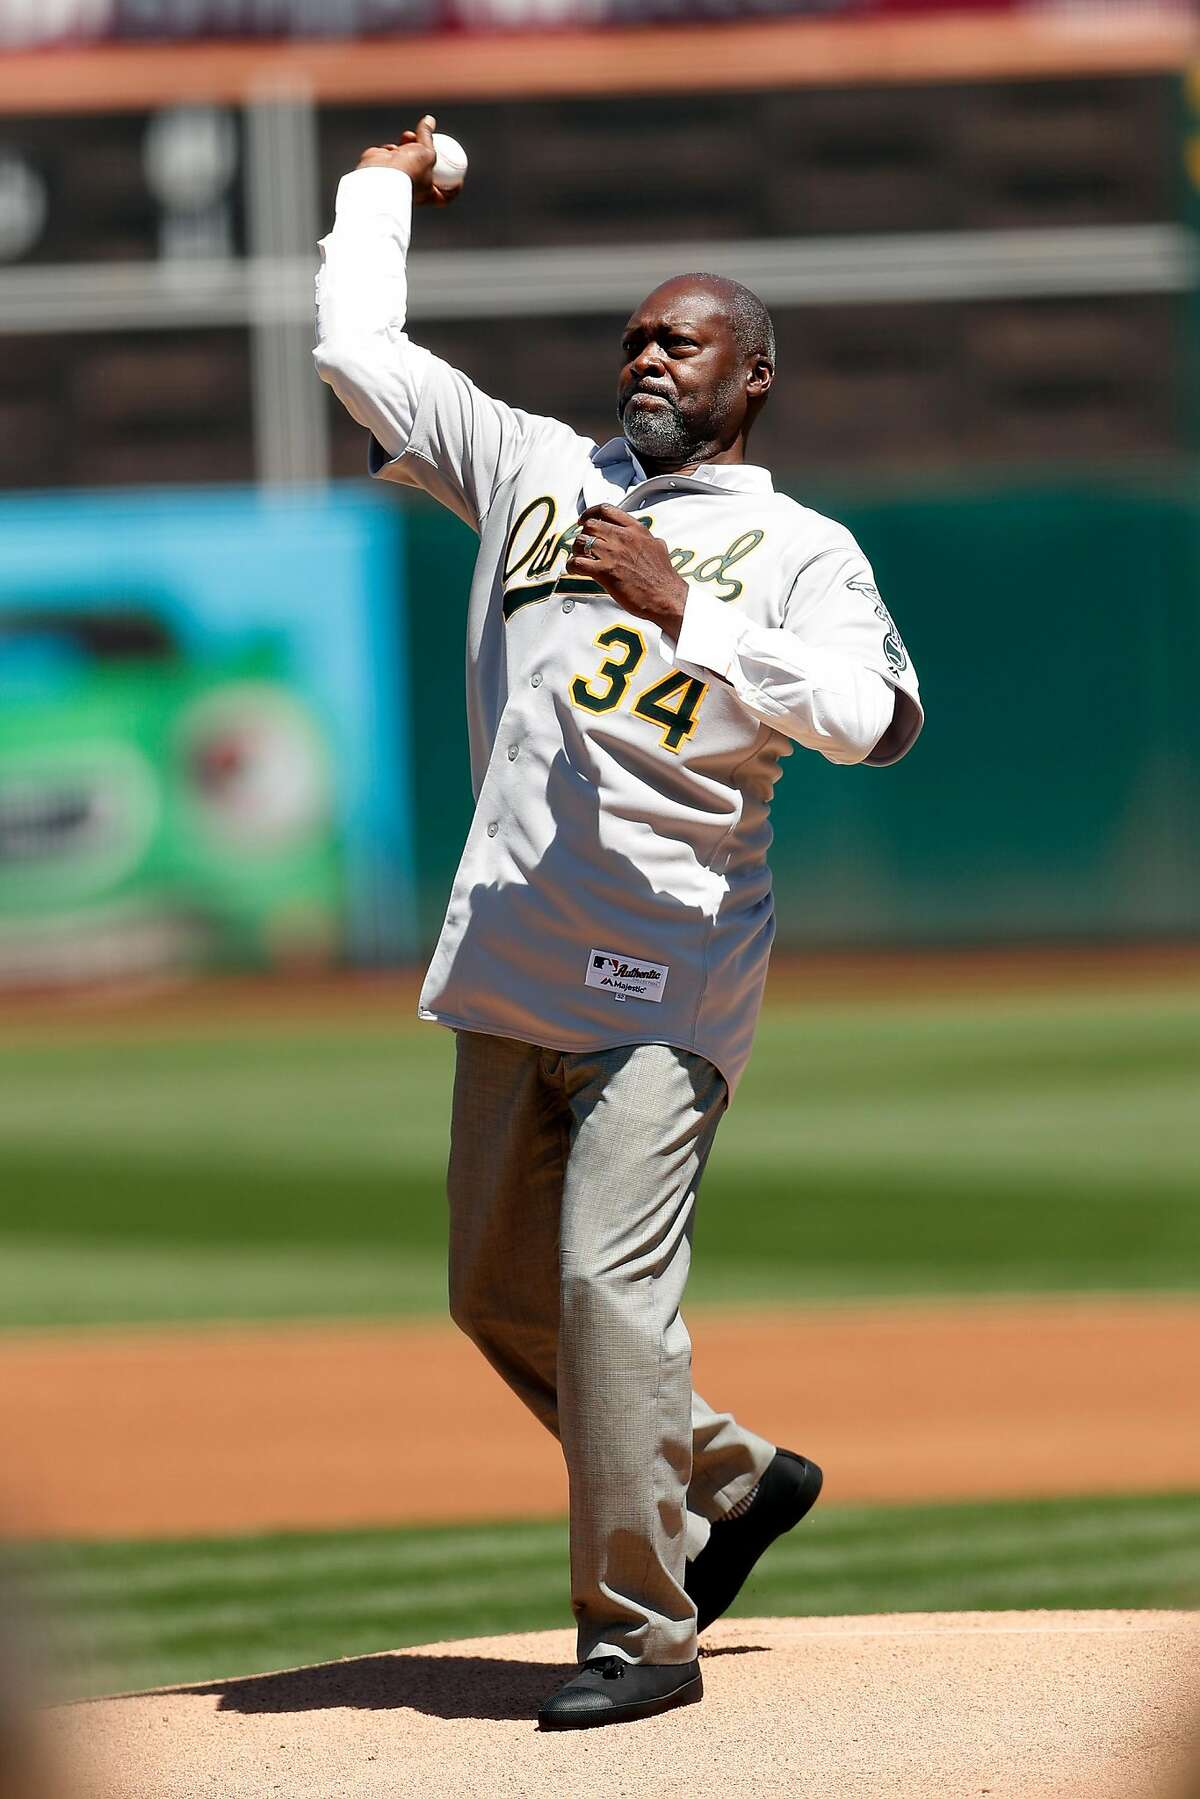 Oakland Athletics' Dave Stewart throws out first pitch during ceremony honoring 1989 World Series champions before A's played San Francisco Giants in MLB game at Oakland Coliseum in Oakland, Calif., on Sunday, August 25, 2019.